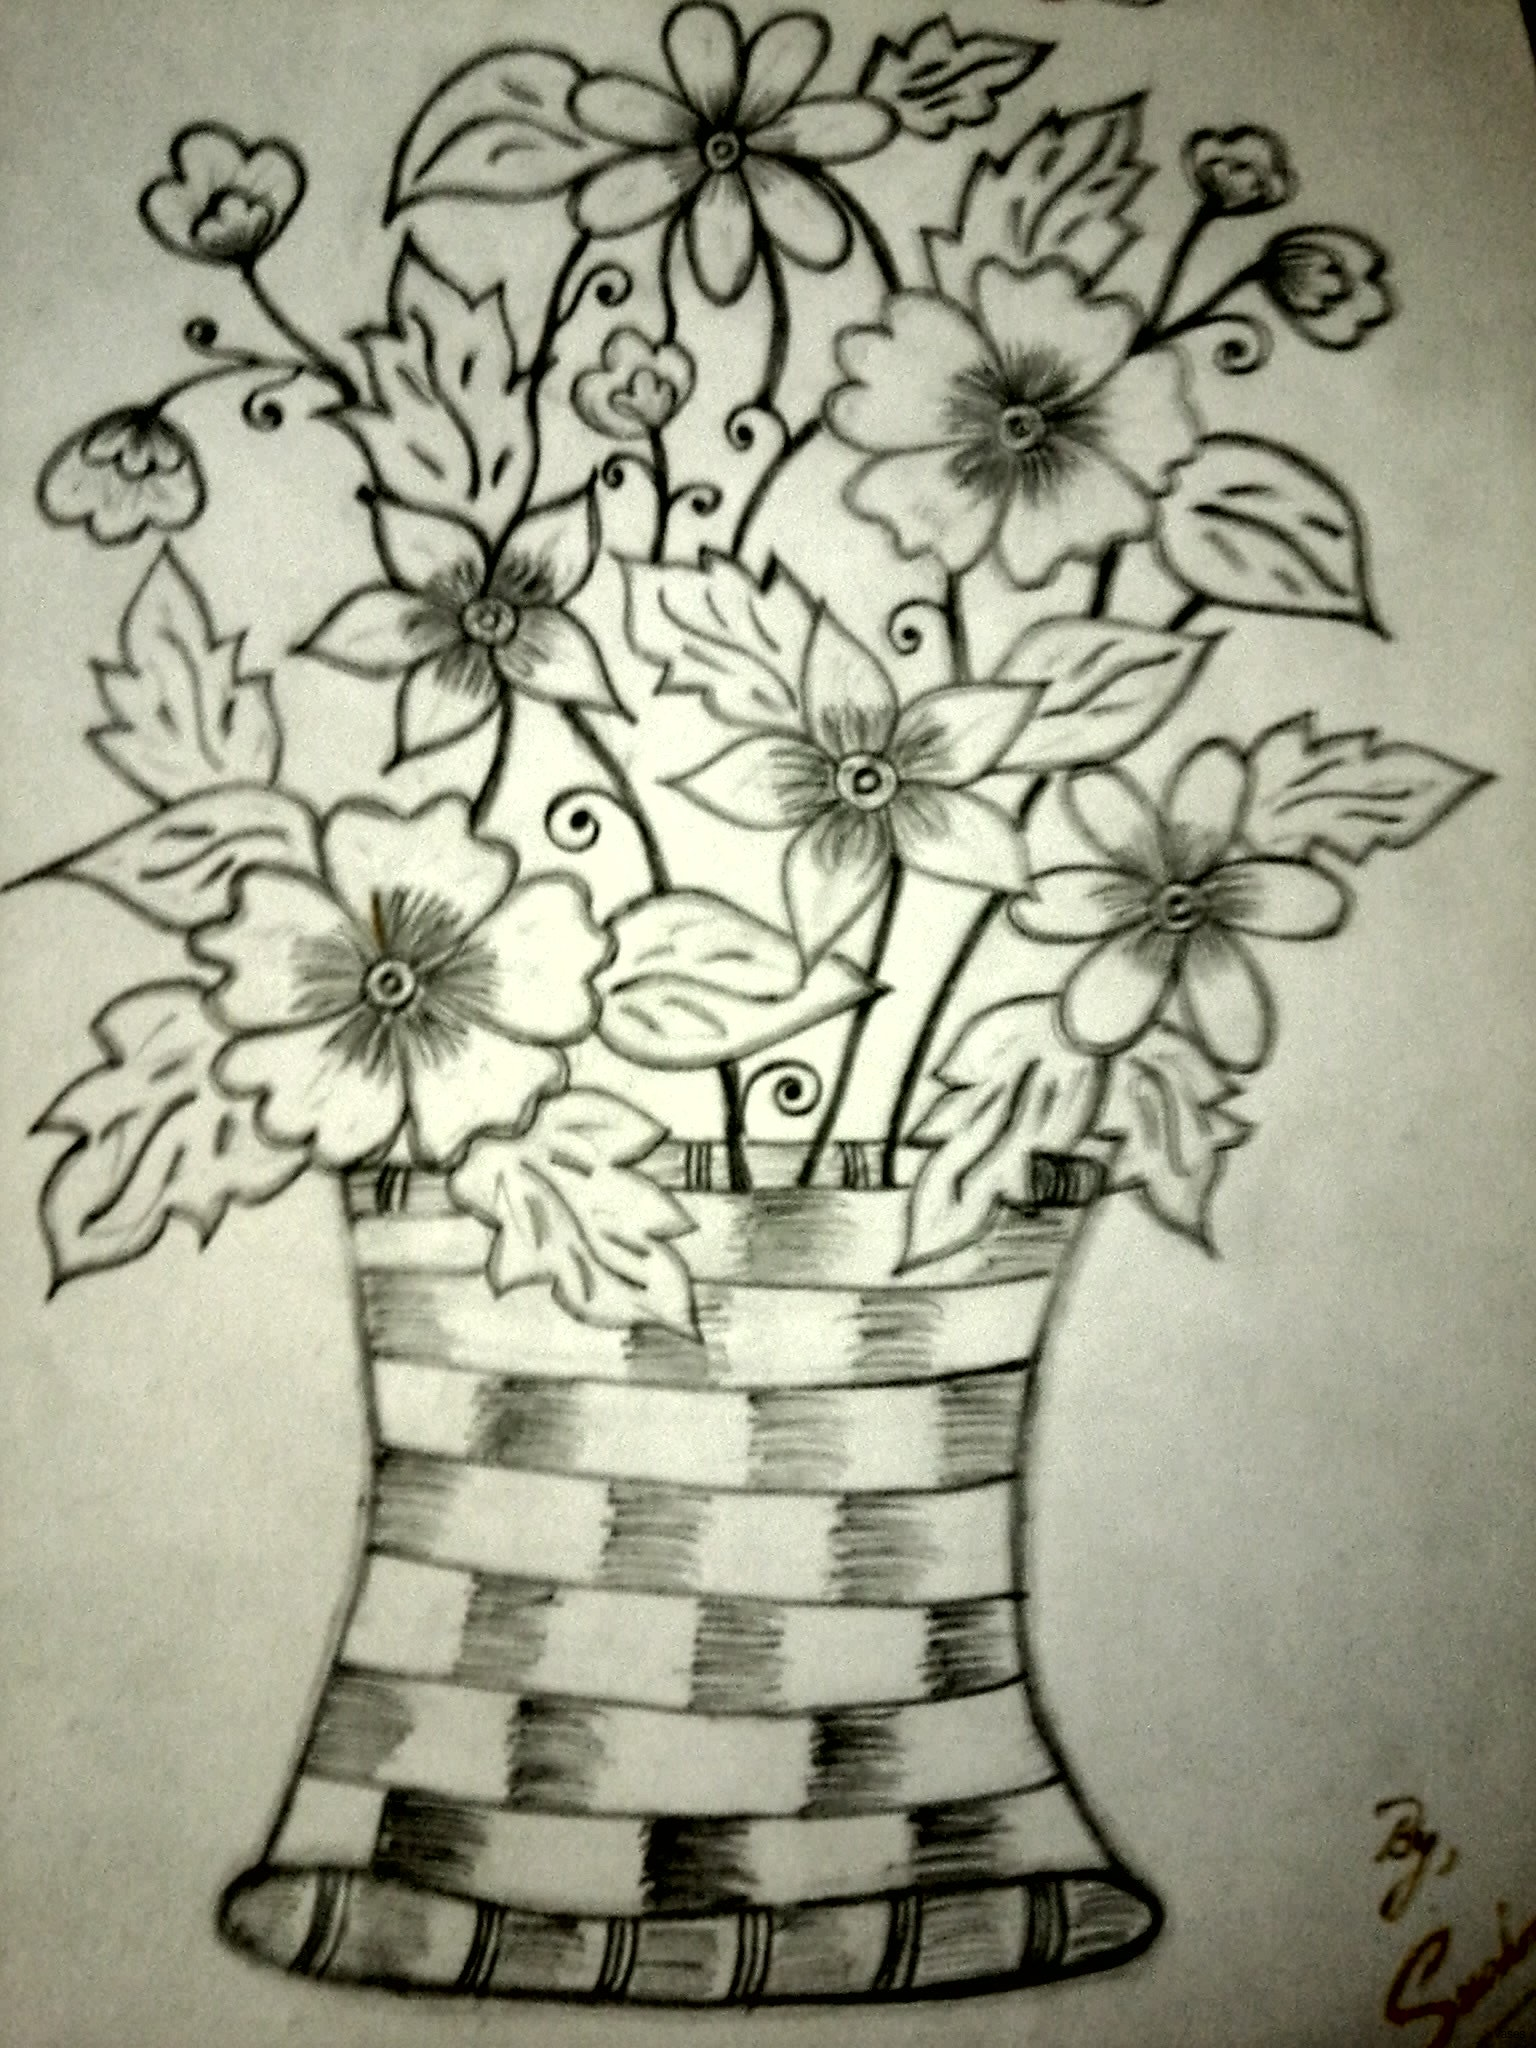 1536x2048 Drawn Vase Pencil Shading And In Color Flower Drawing 772x1024h